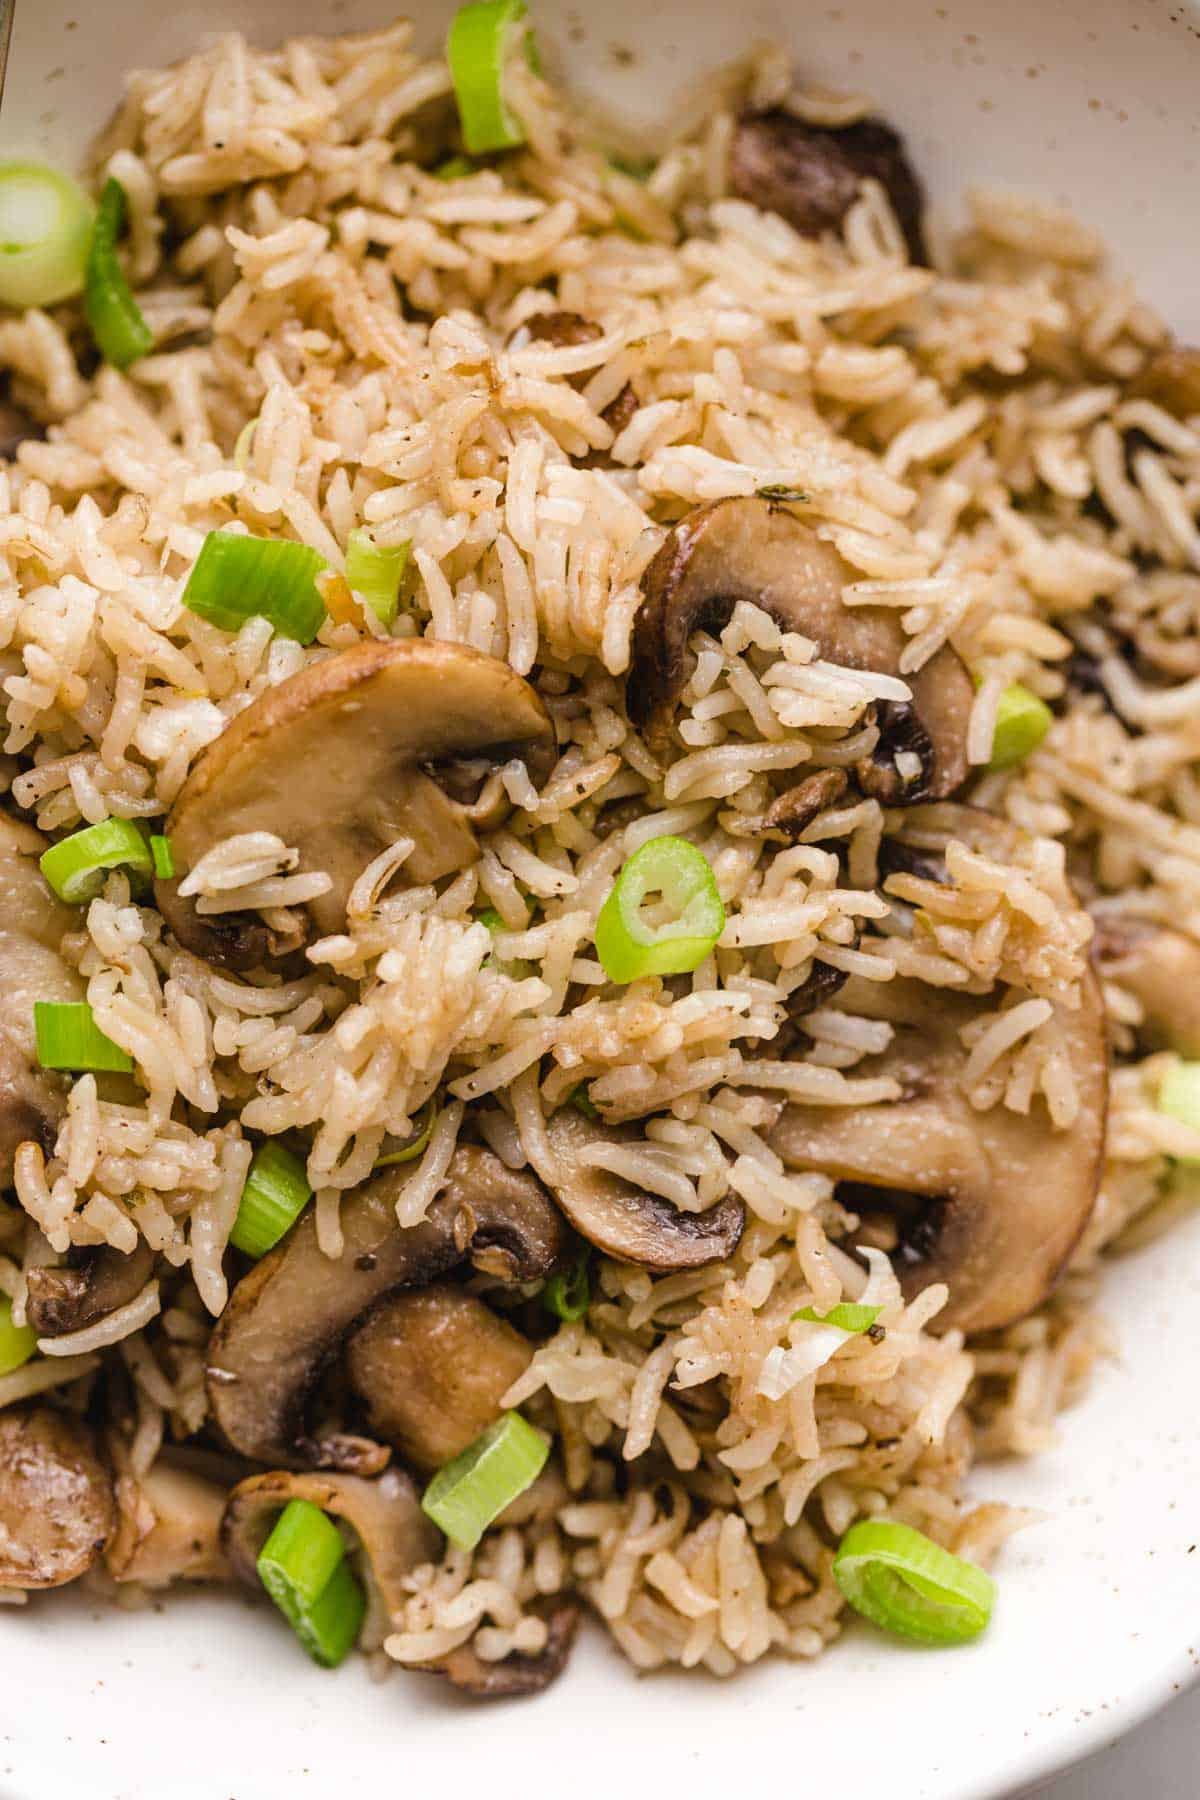 A close up shot of mushroom rice garnished with sliced green onions